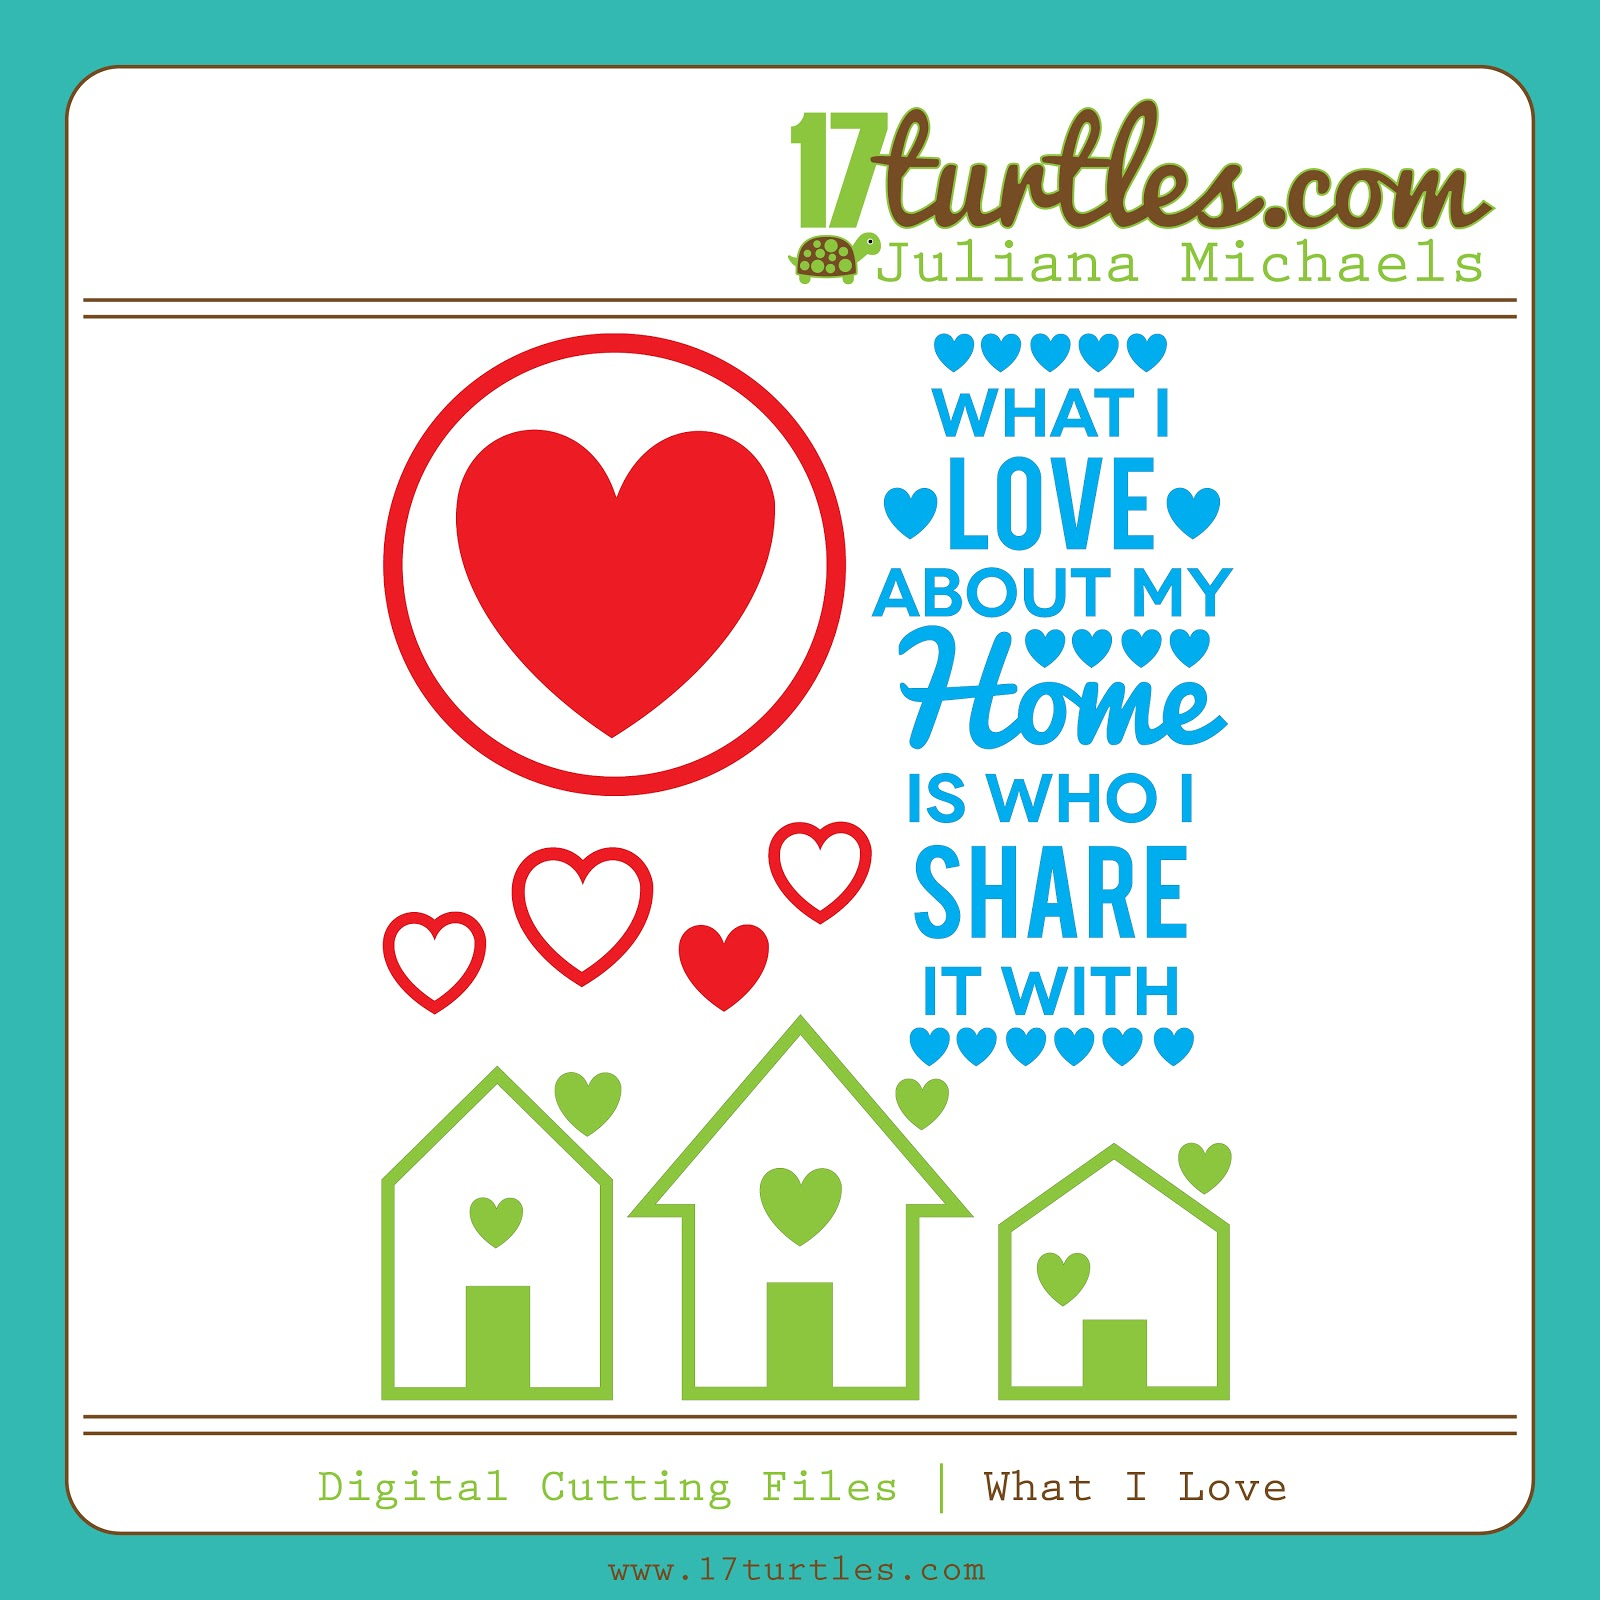 What I Love Free Digital Cutting File by Juliana Michaels